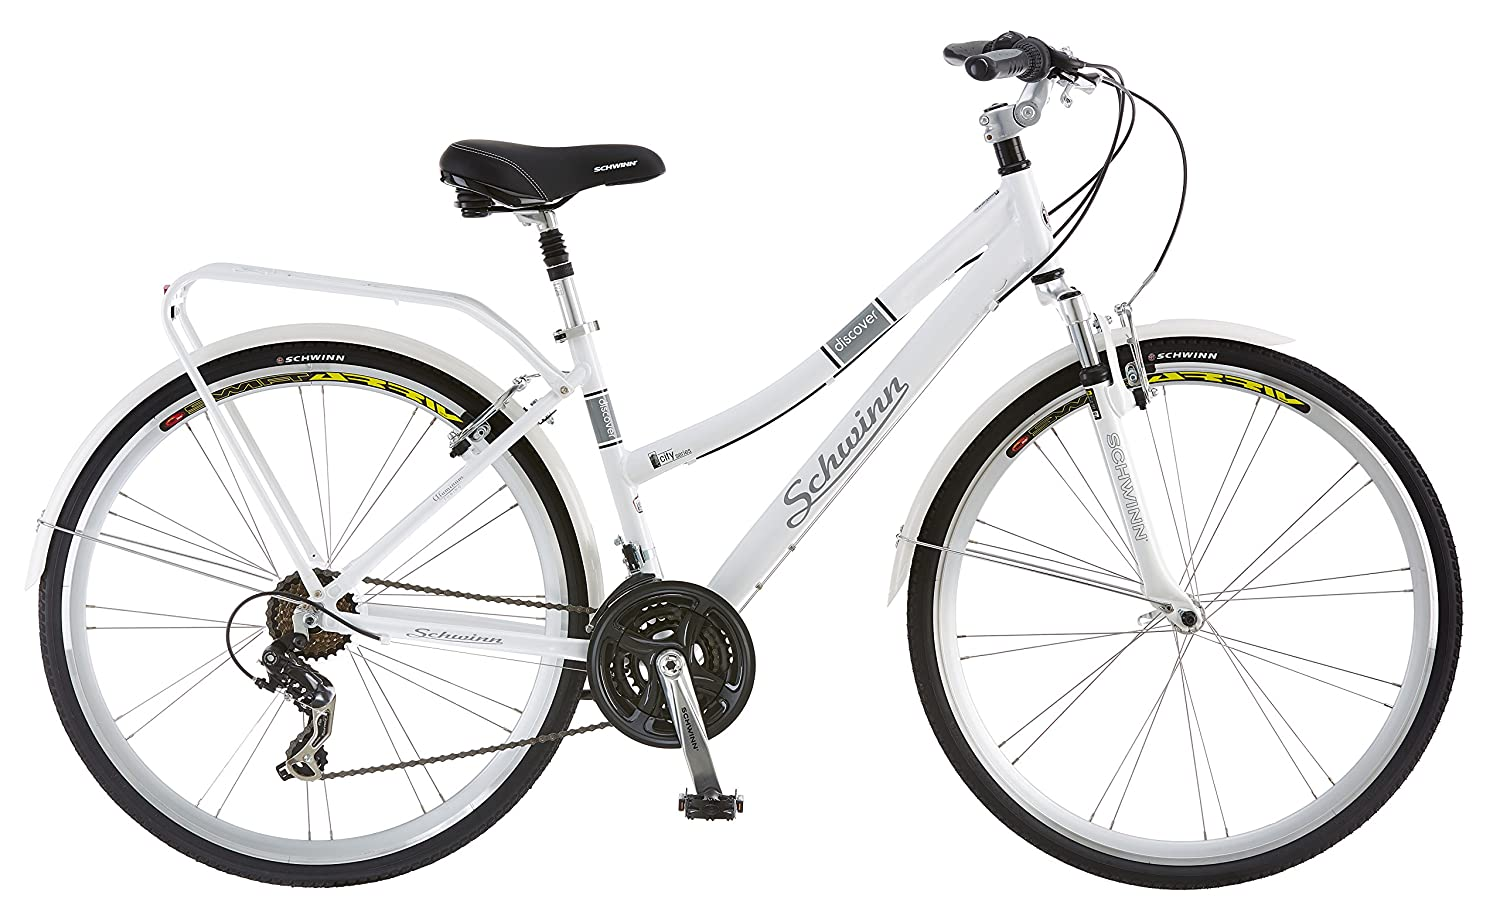 342e1b1a3a7 Amazon.com : Schwinn Discover Hybrid Bike, Featuring 16-Inch/Small Aluminum  Step-Through Frame with 21-Speed Drivetrain, Front and Rear Fenders, ...